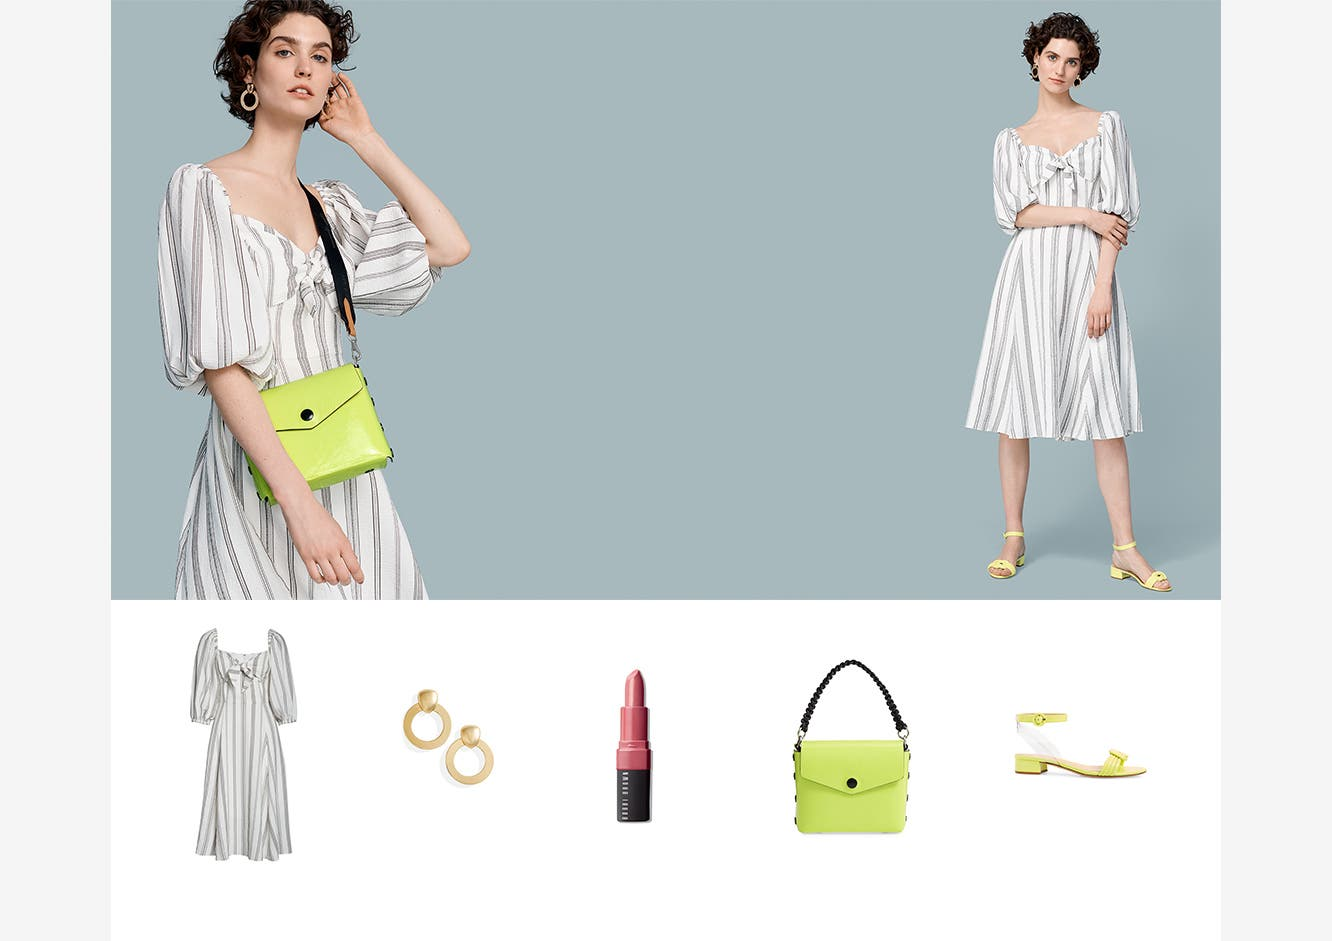 efd5e928166 Women's Clothing, Shoes, & Accessories | Nordstrom